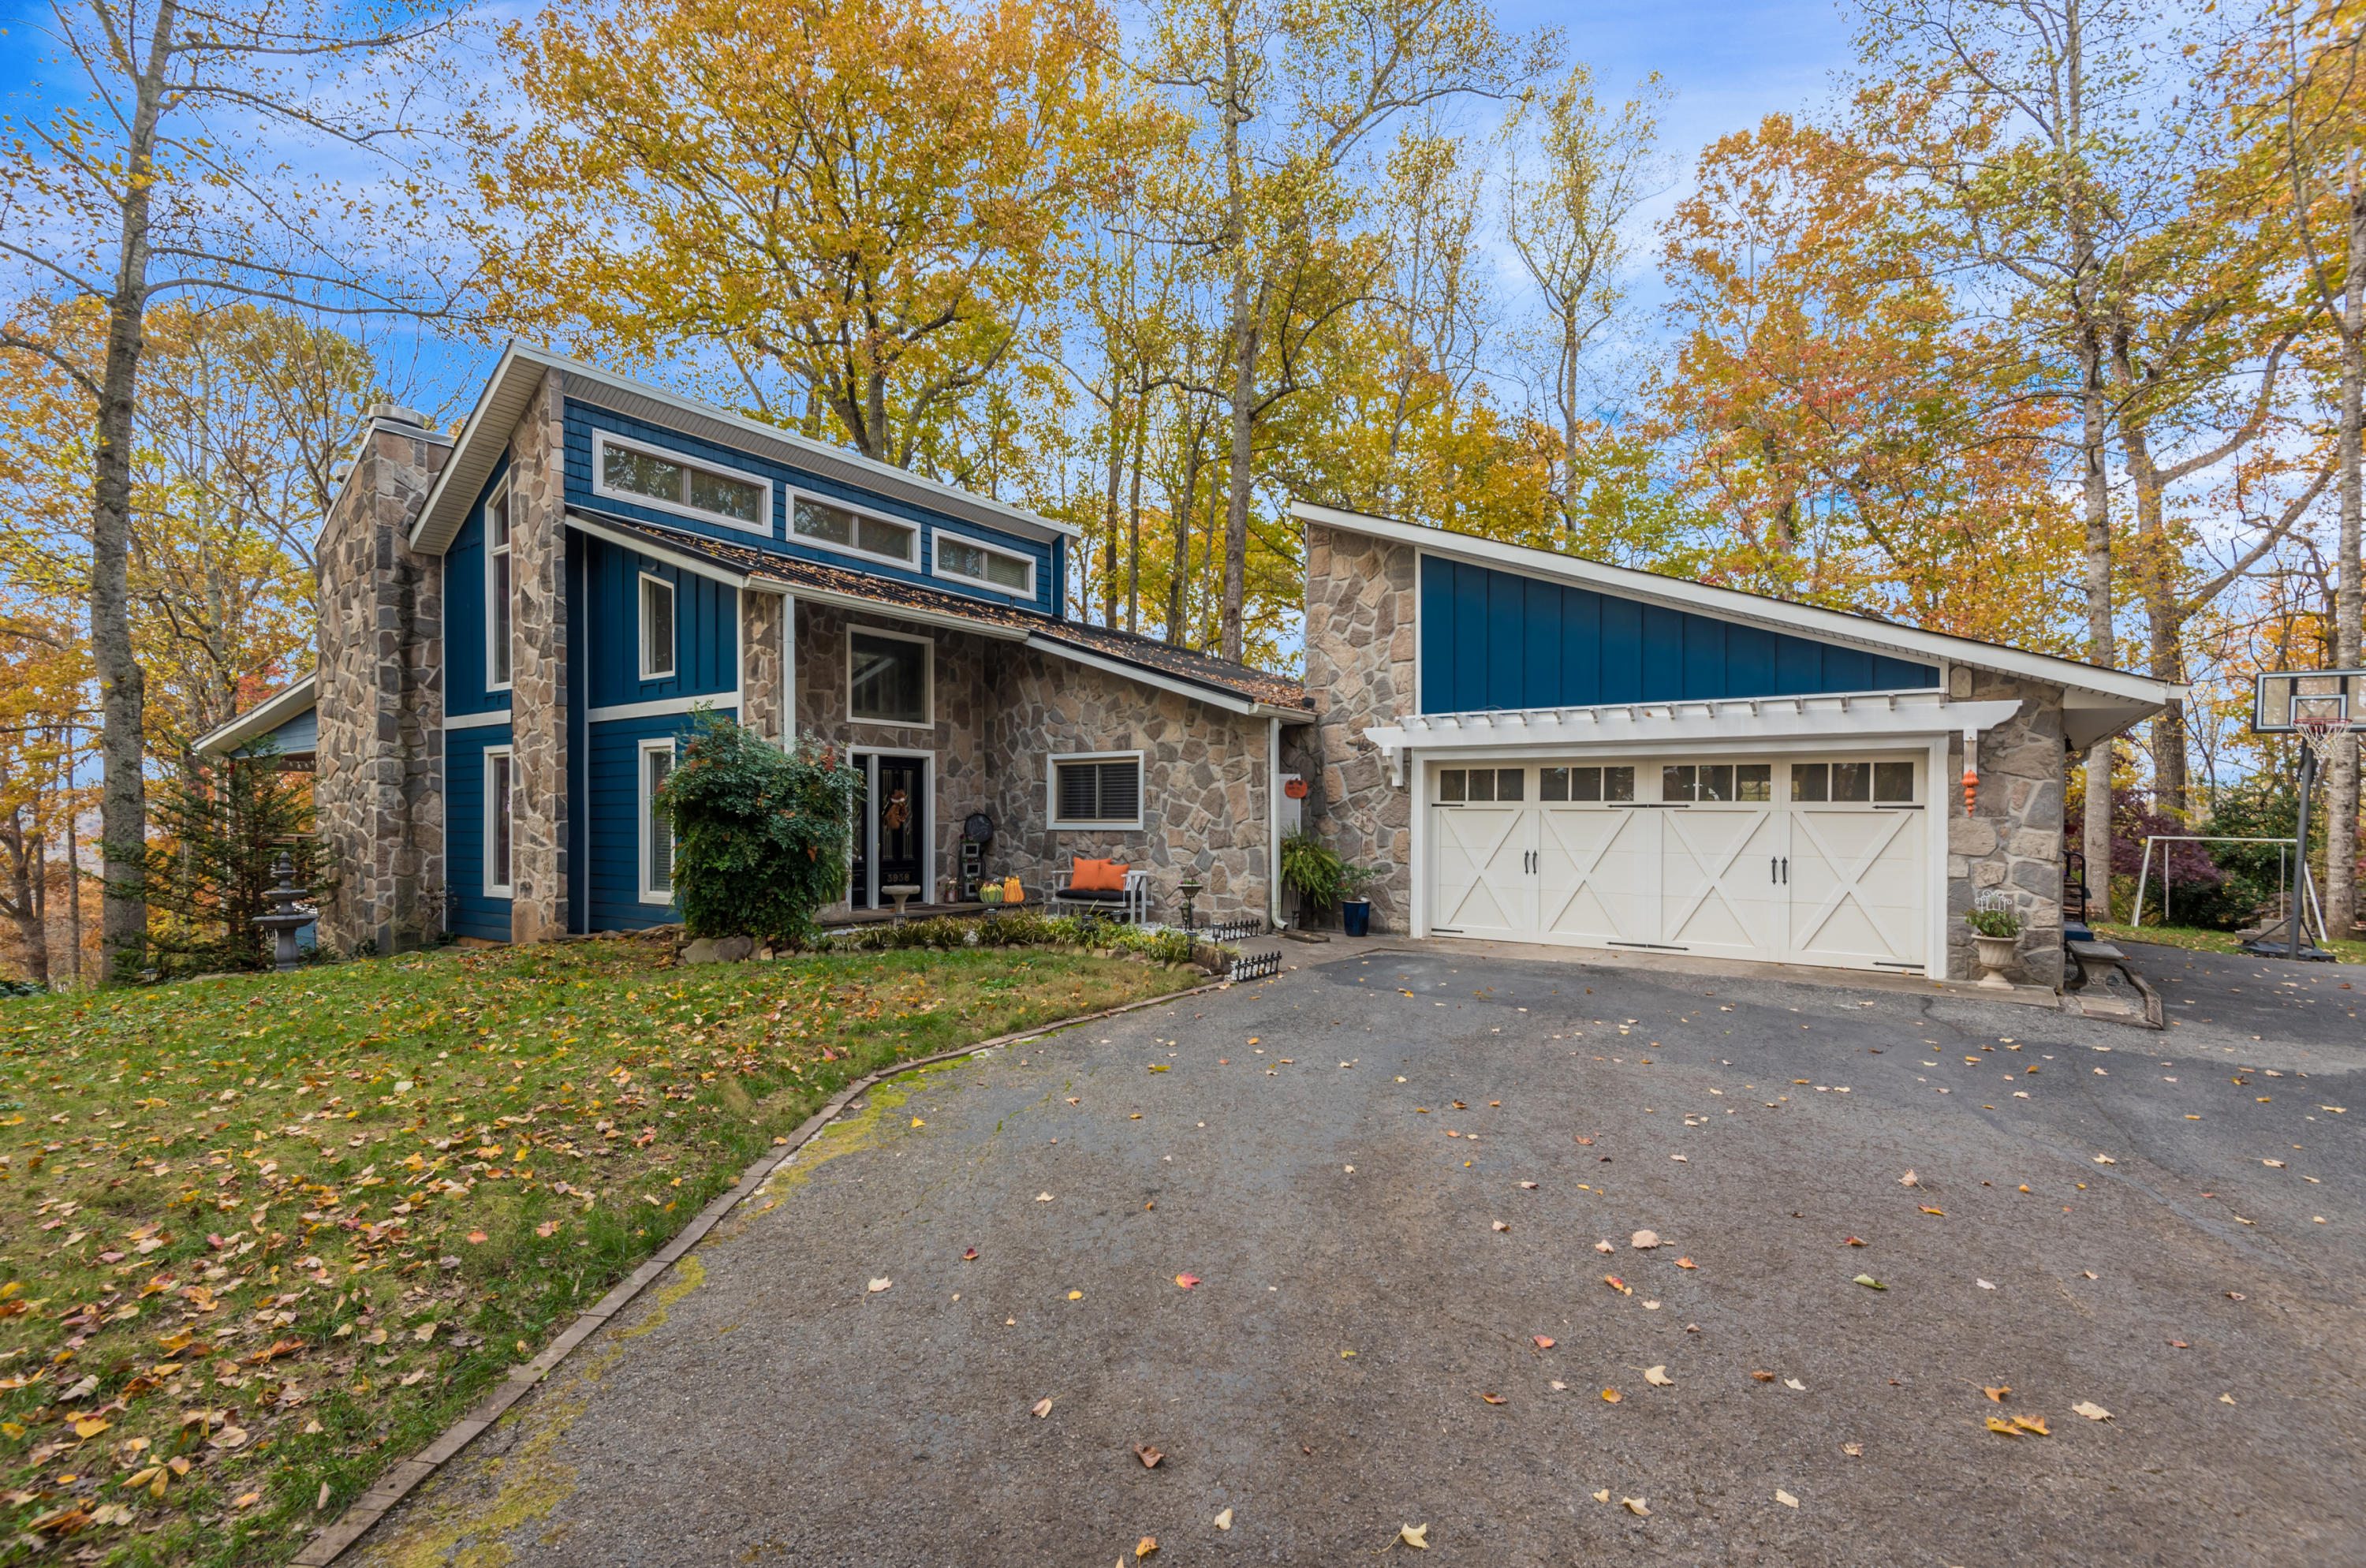 3938 Guinn Rd, Knoxville, Tennessee 37931, 3 Bedrooms Bedrooms, ,3 BathroomsBathrooms,Single Family,For Sale,Guinn,1100797